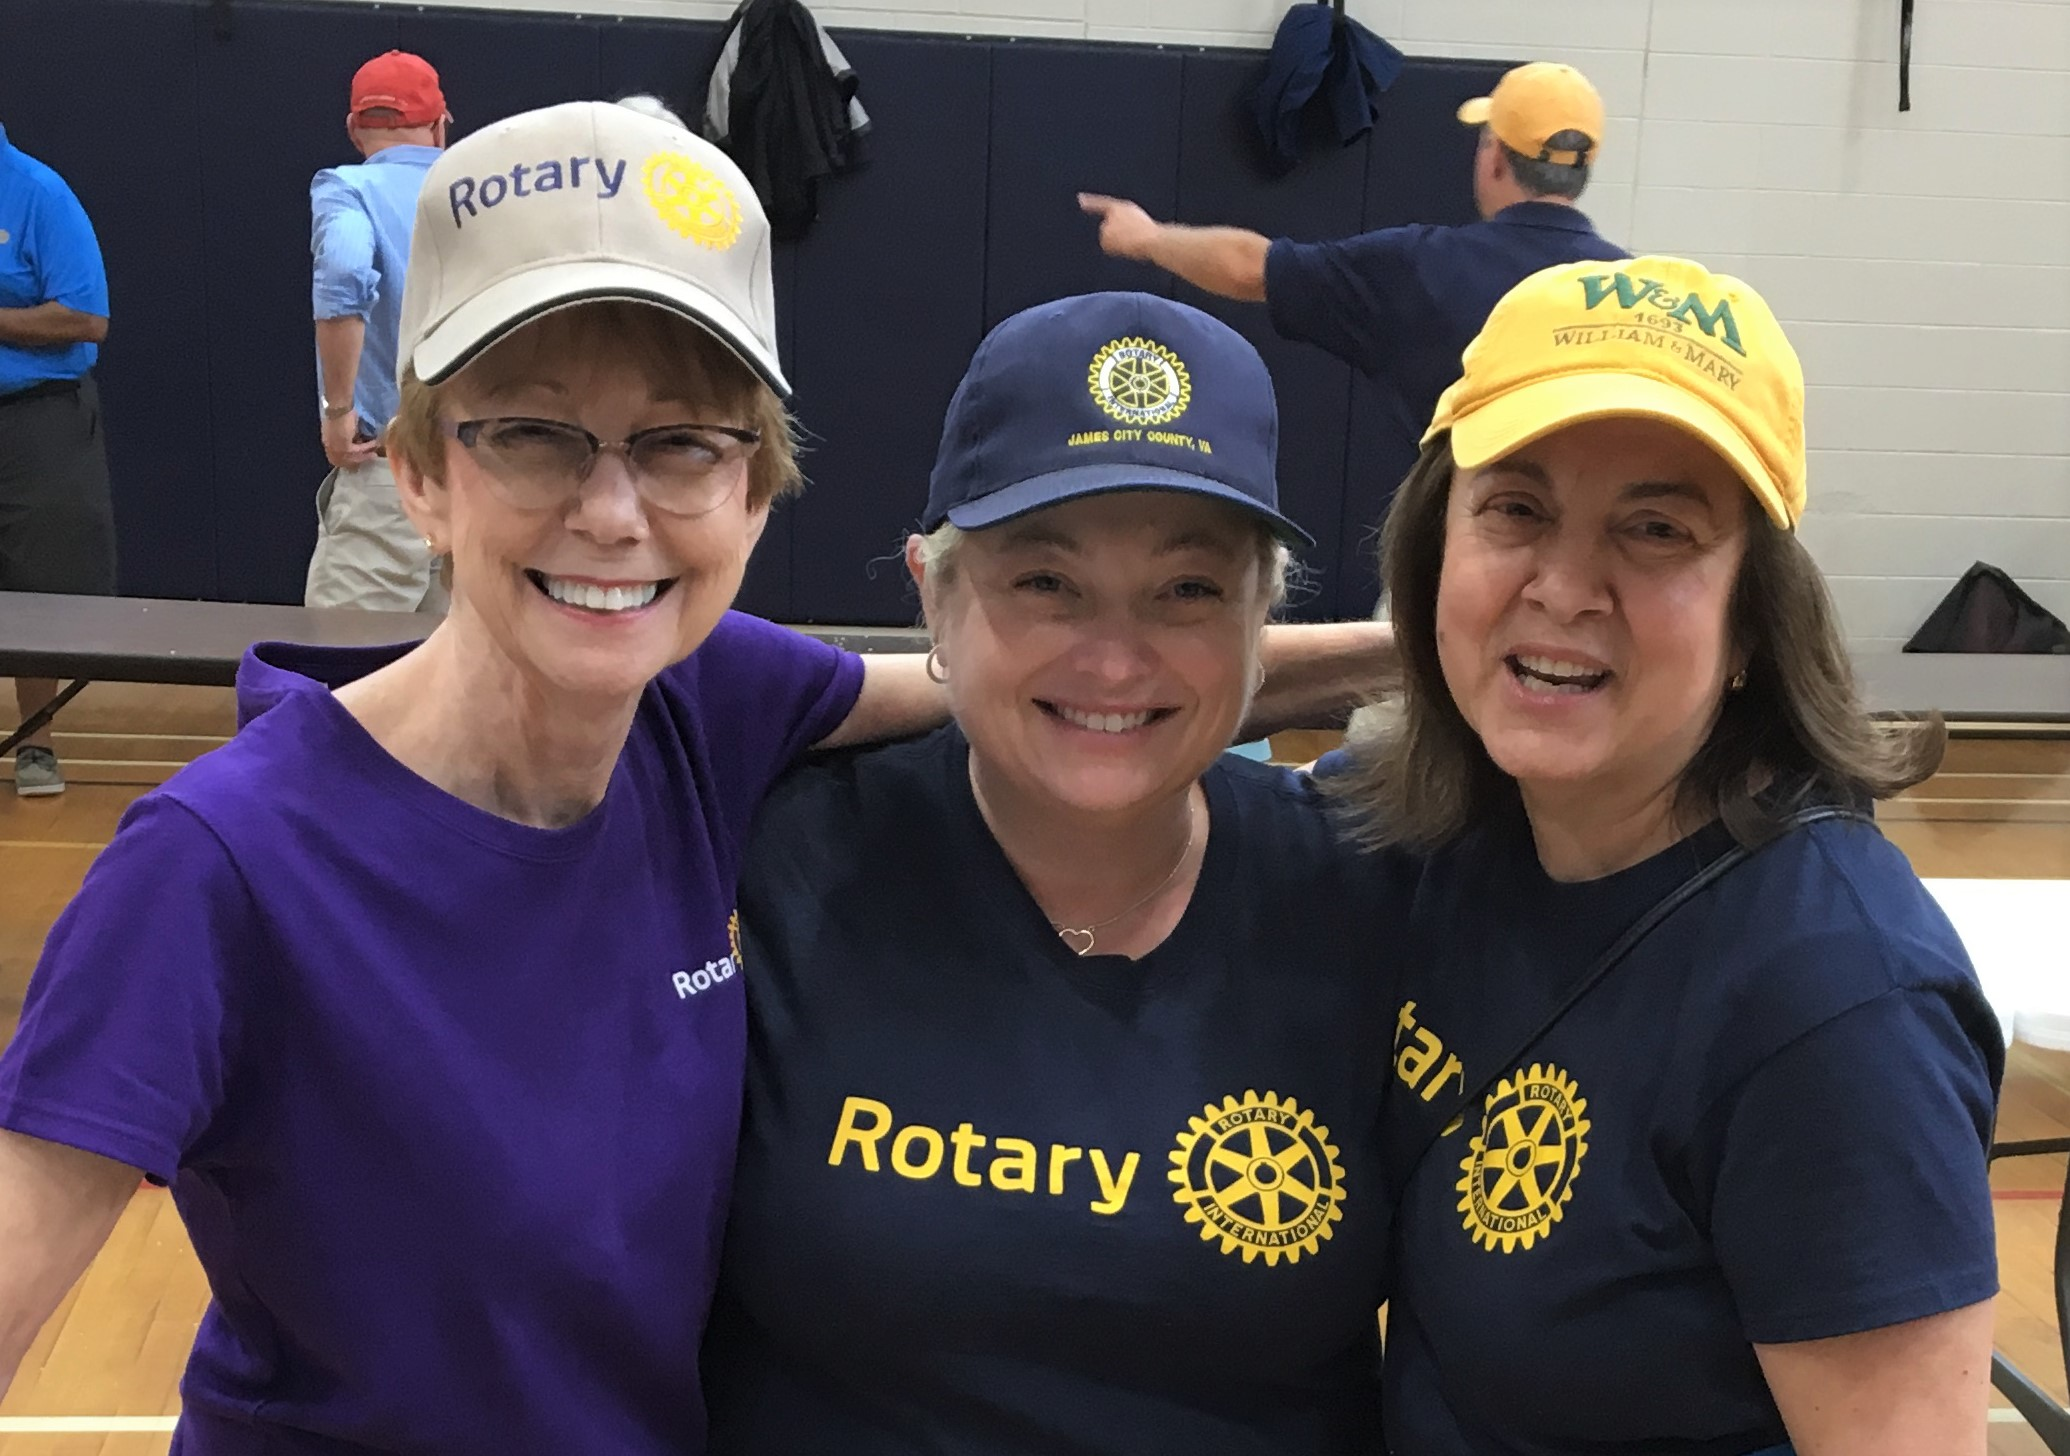 rise against hunger - JCC and Satellite Club joined other local Rotarians to pack 15,000+ nutritious meals in 90 minutes as part of the Rise Against Hunger effort.